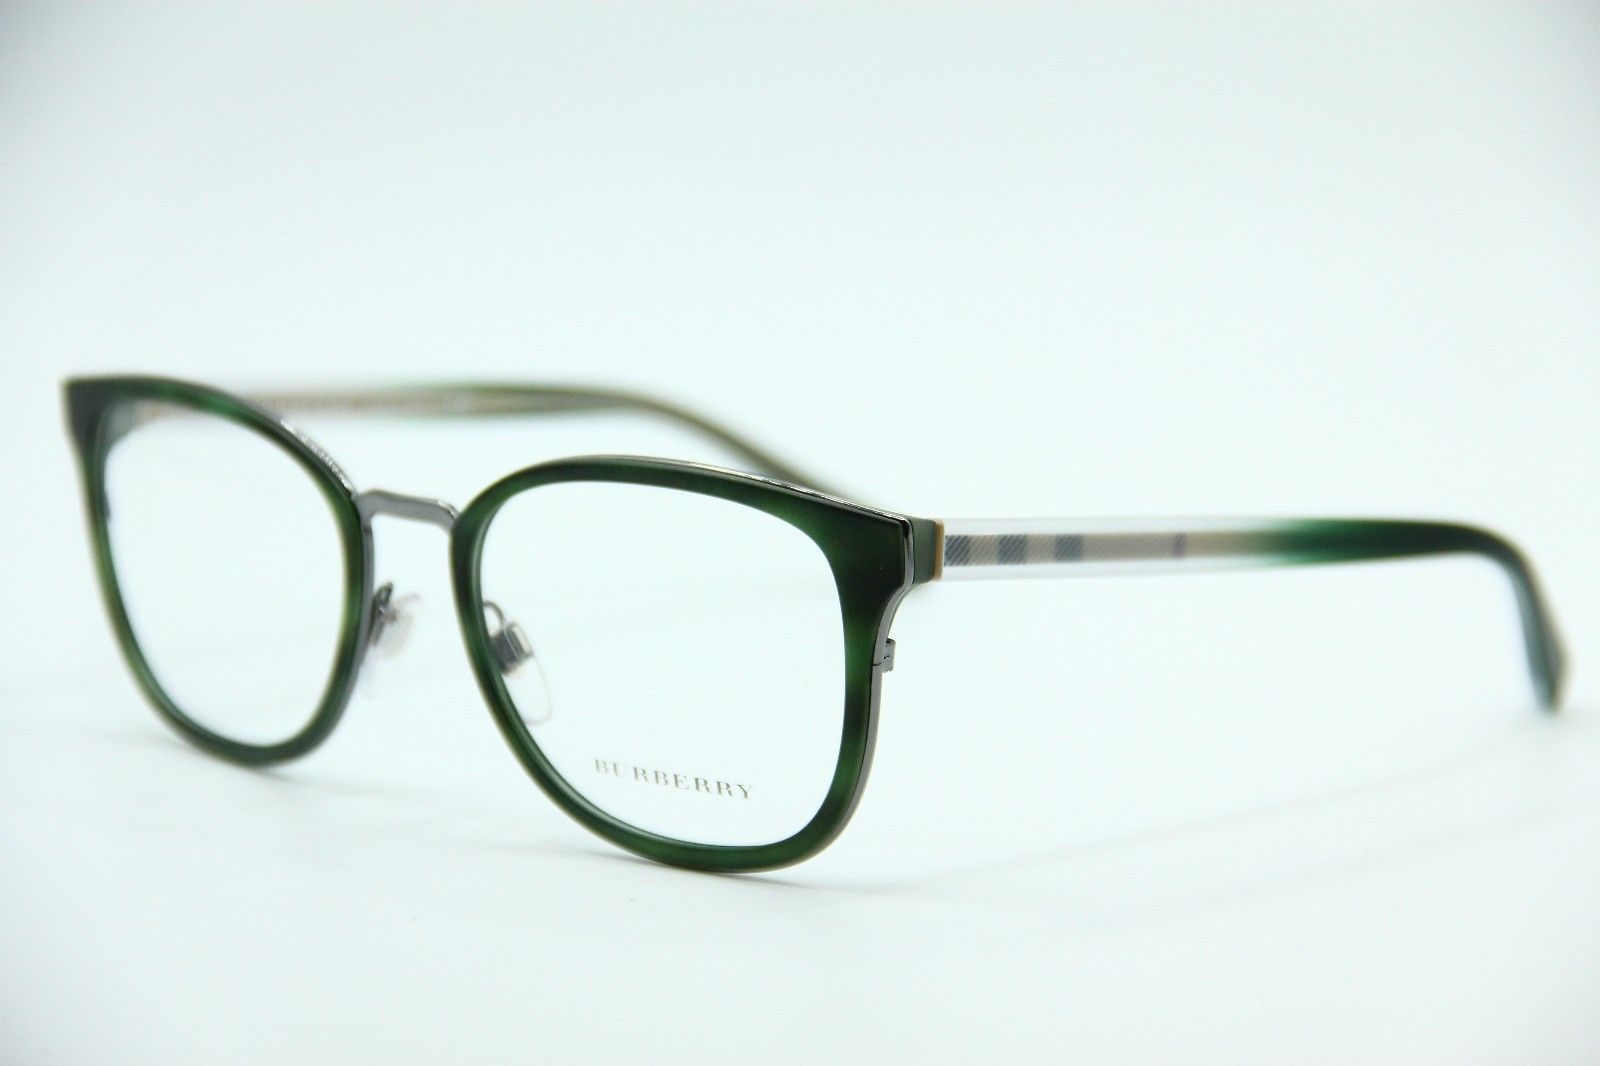 579fcaf96292 New Burberry B 2256 3659 Green Eyeglasses and 50 similar items. 57